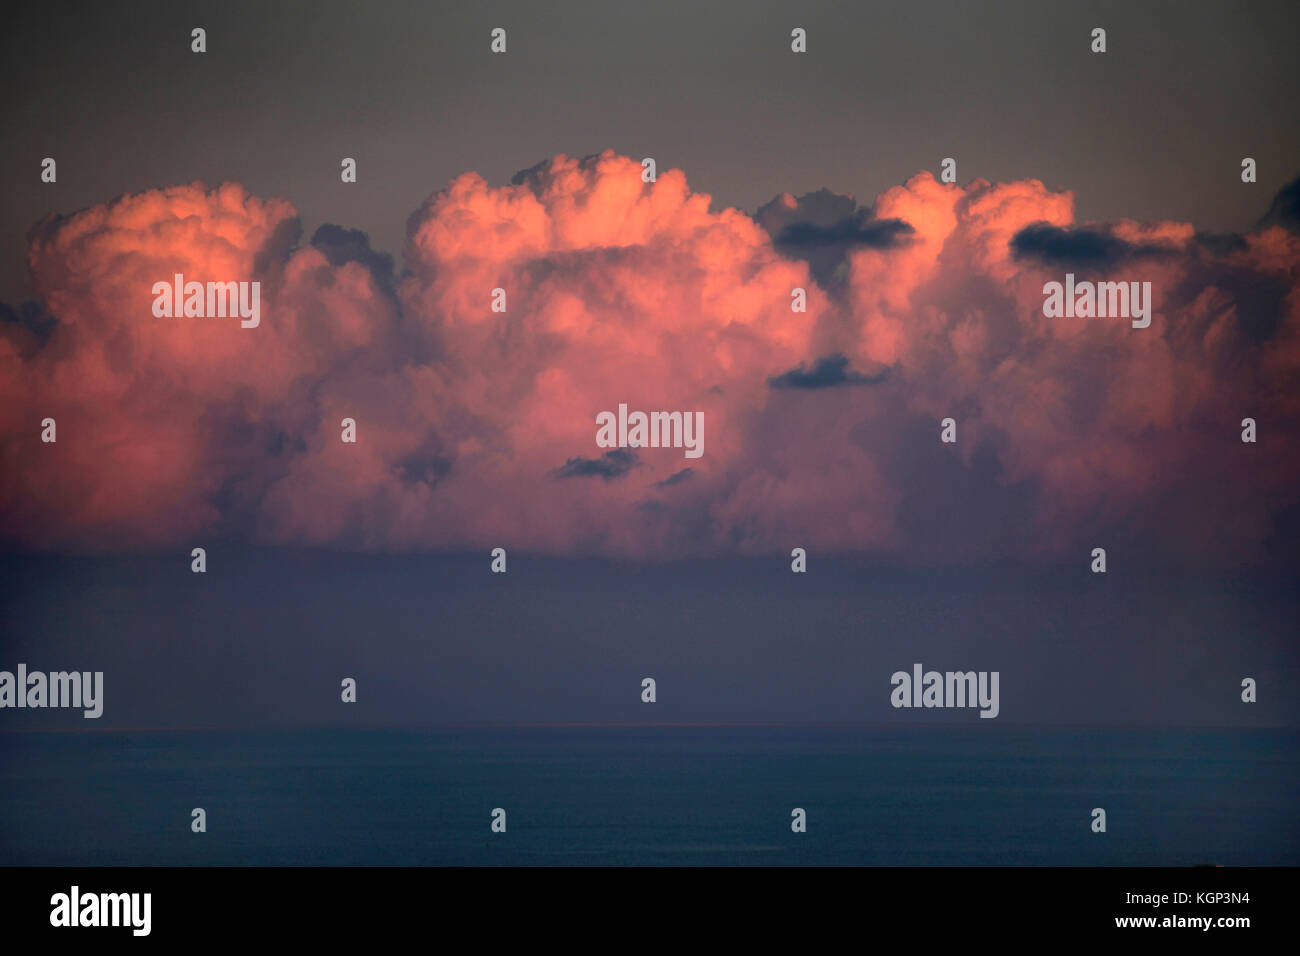 Cumulonimbus clouds over the horizon at the Mediterranean Sea. - Stock Image